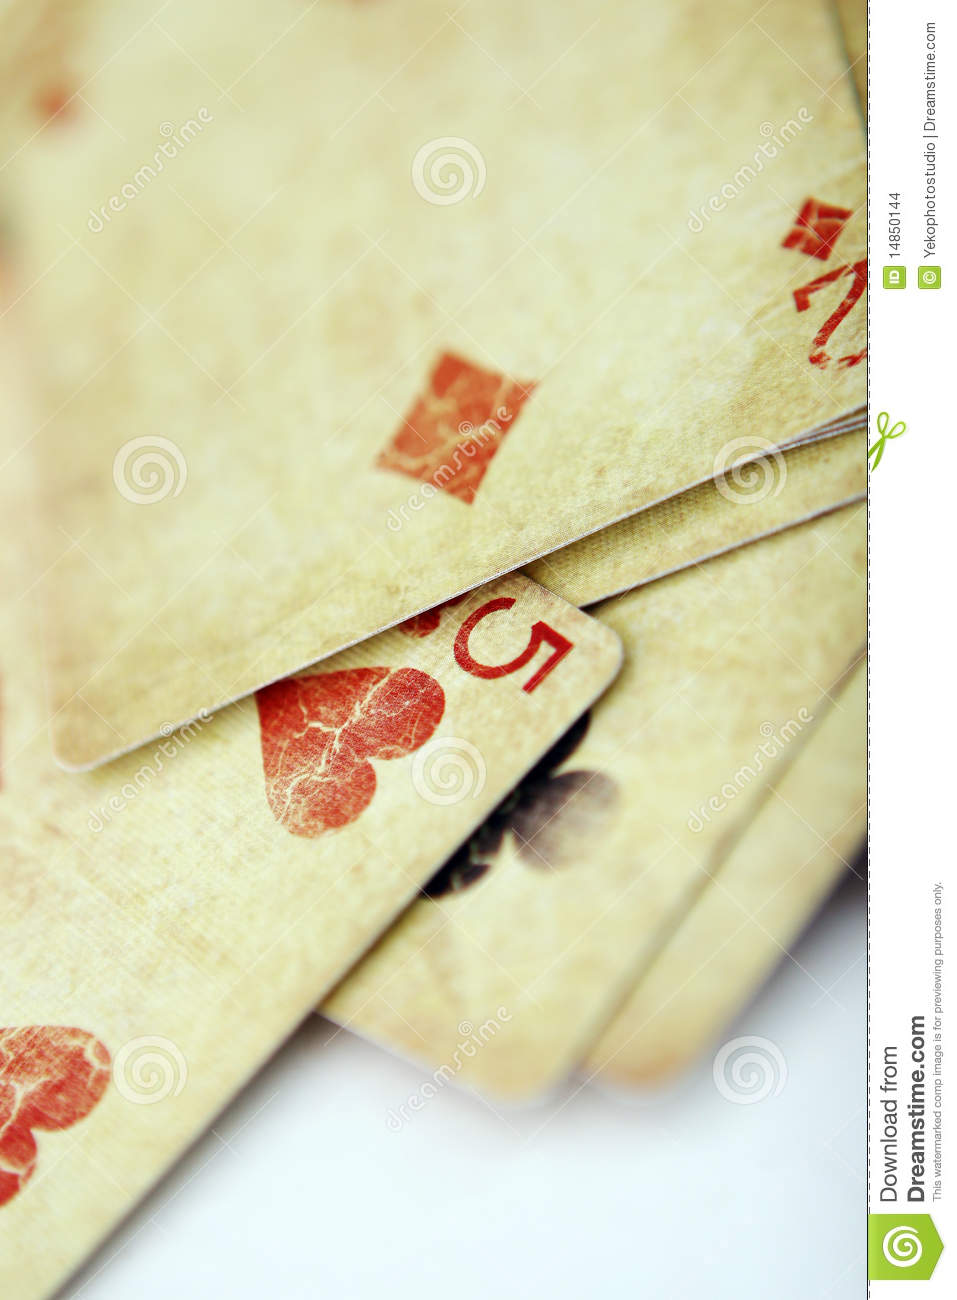 Playing cards in the white table